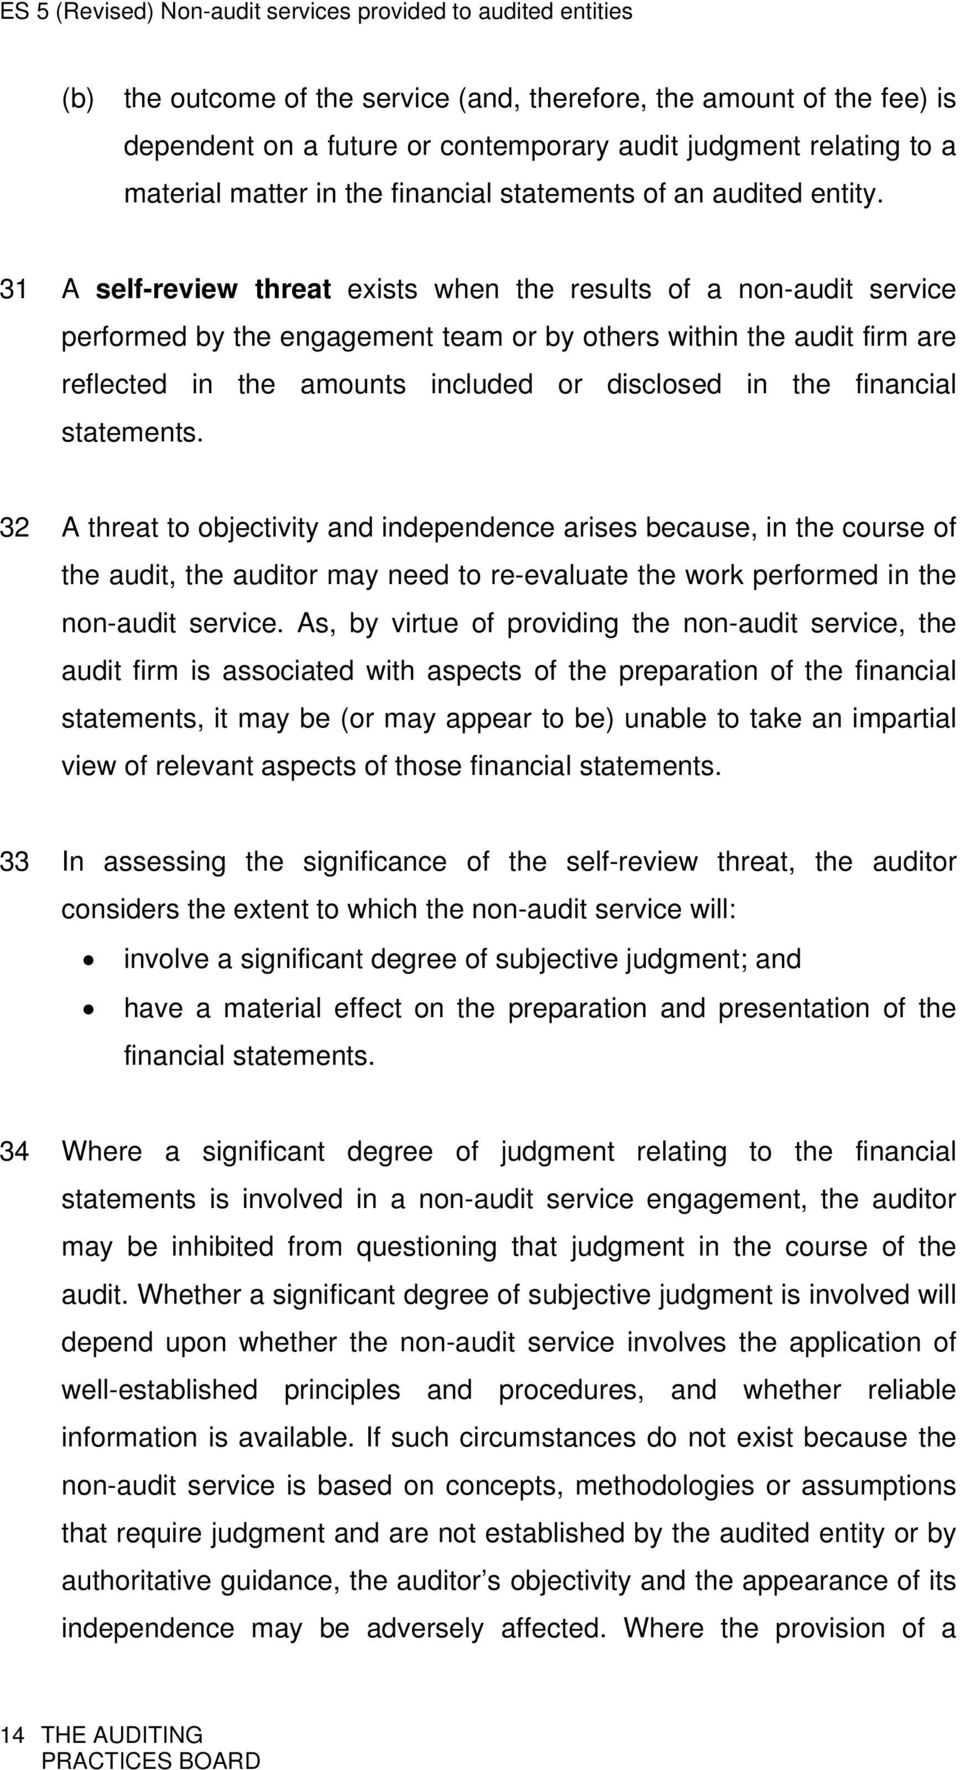 31 A self-review threat exists when the results of a non-audit service performed by the engagement team or by others within the audit firm are reflected in the amounts included or disclosed in the